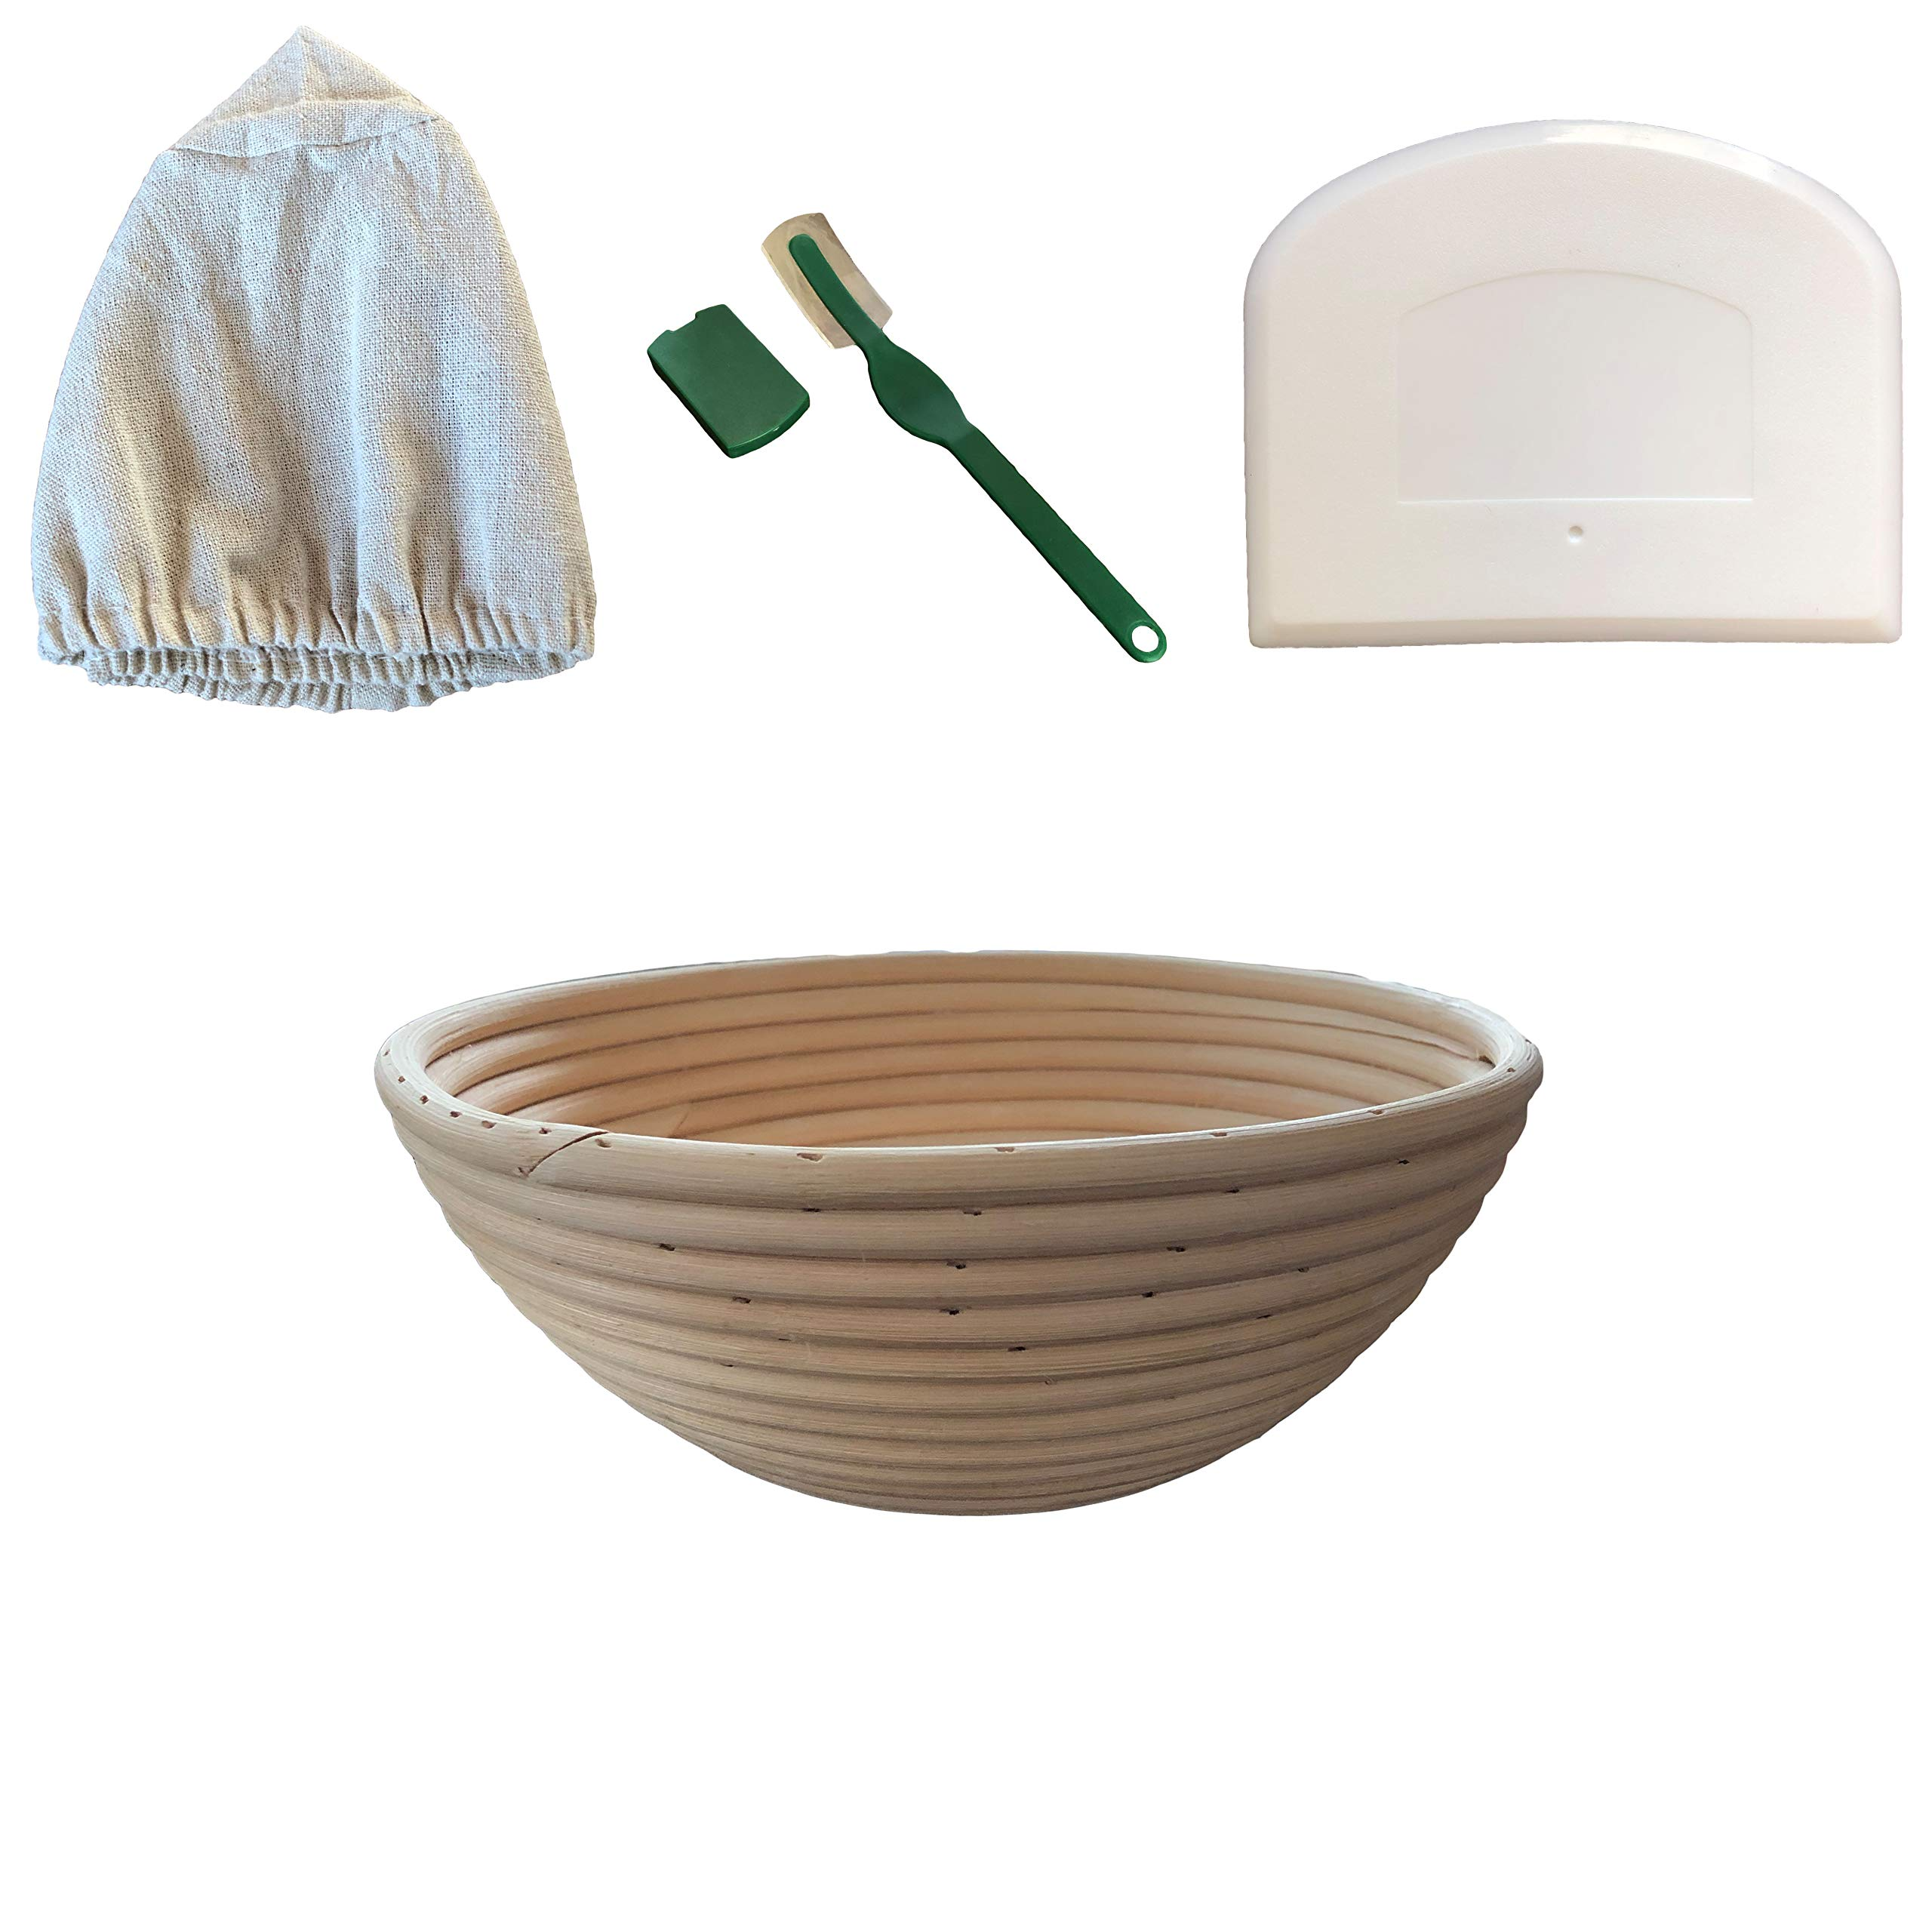 Make Beautiful Sourdough Bread with Baker's Reserve Ultimate Bread Baking Kit - Kit Includes Round 9 inch Banneton, Linen Liner, Dough Scraper and Dough Lame - Perfect for Making Rustic, Artisan Bread